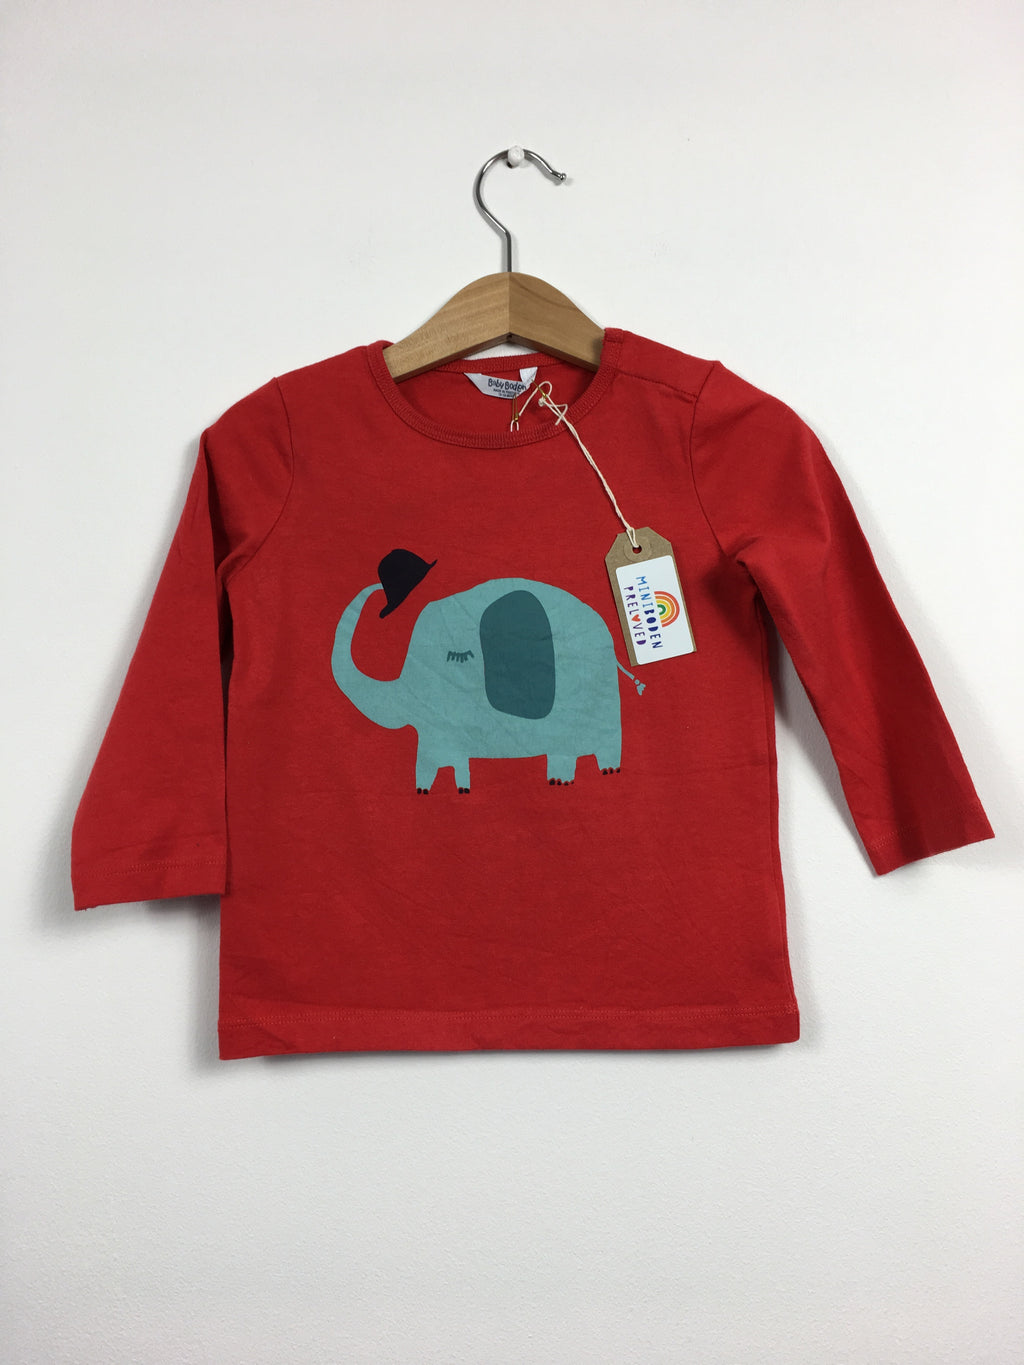 Elephant Print Red Top (Age 12-18 Months)